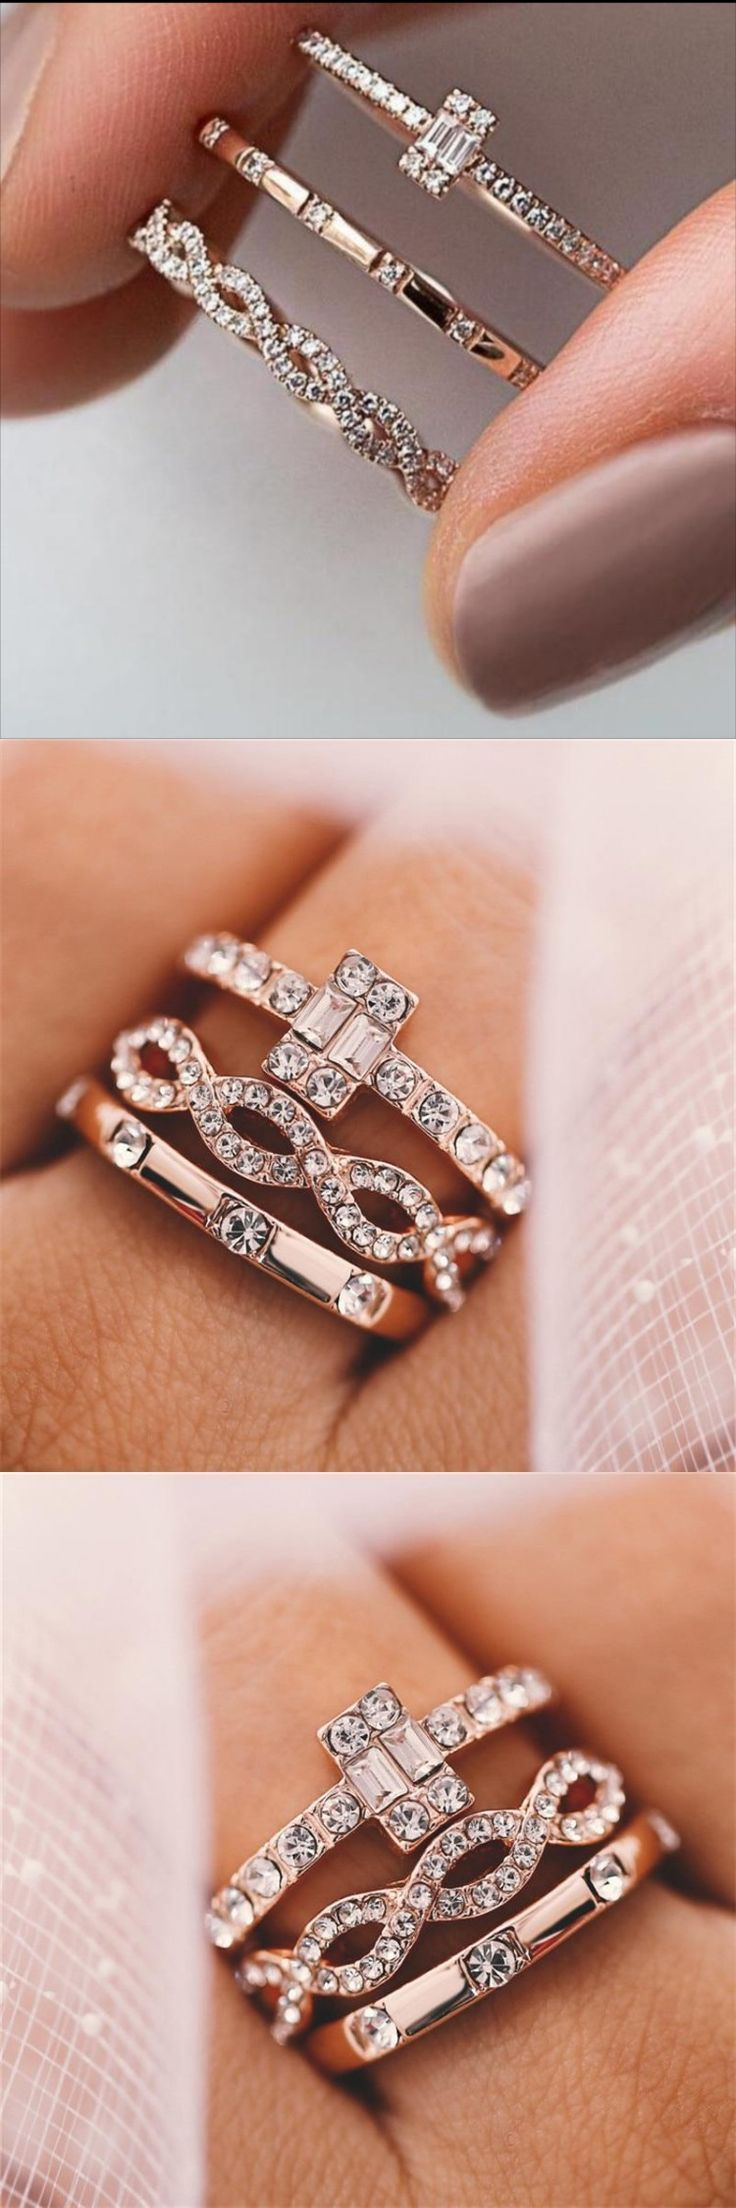 3Pcs/Set Engagement Rings